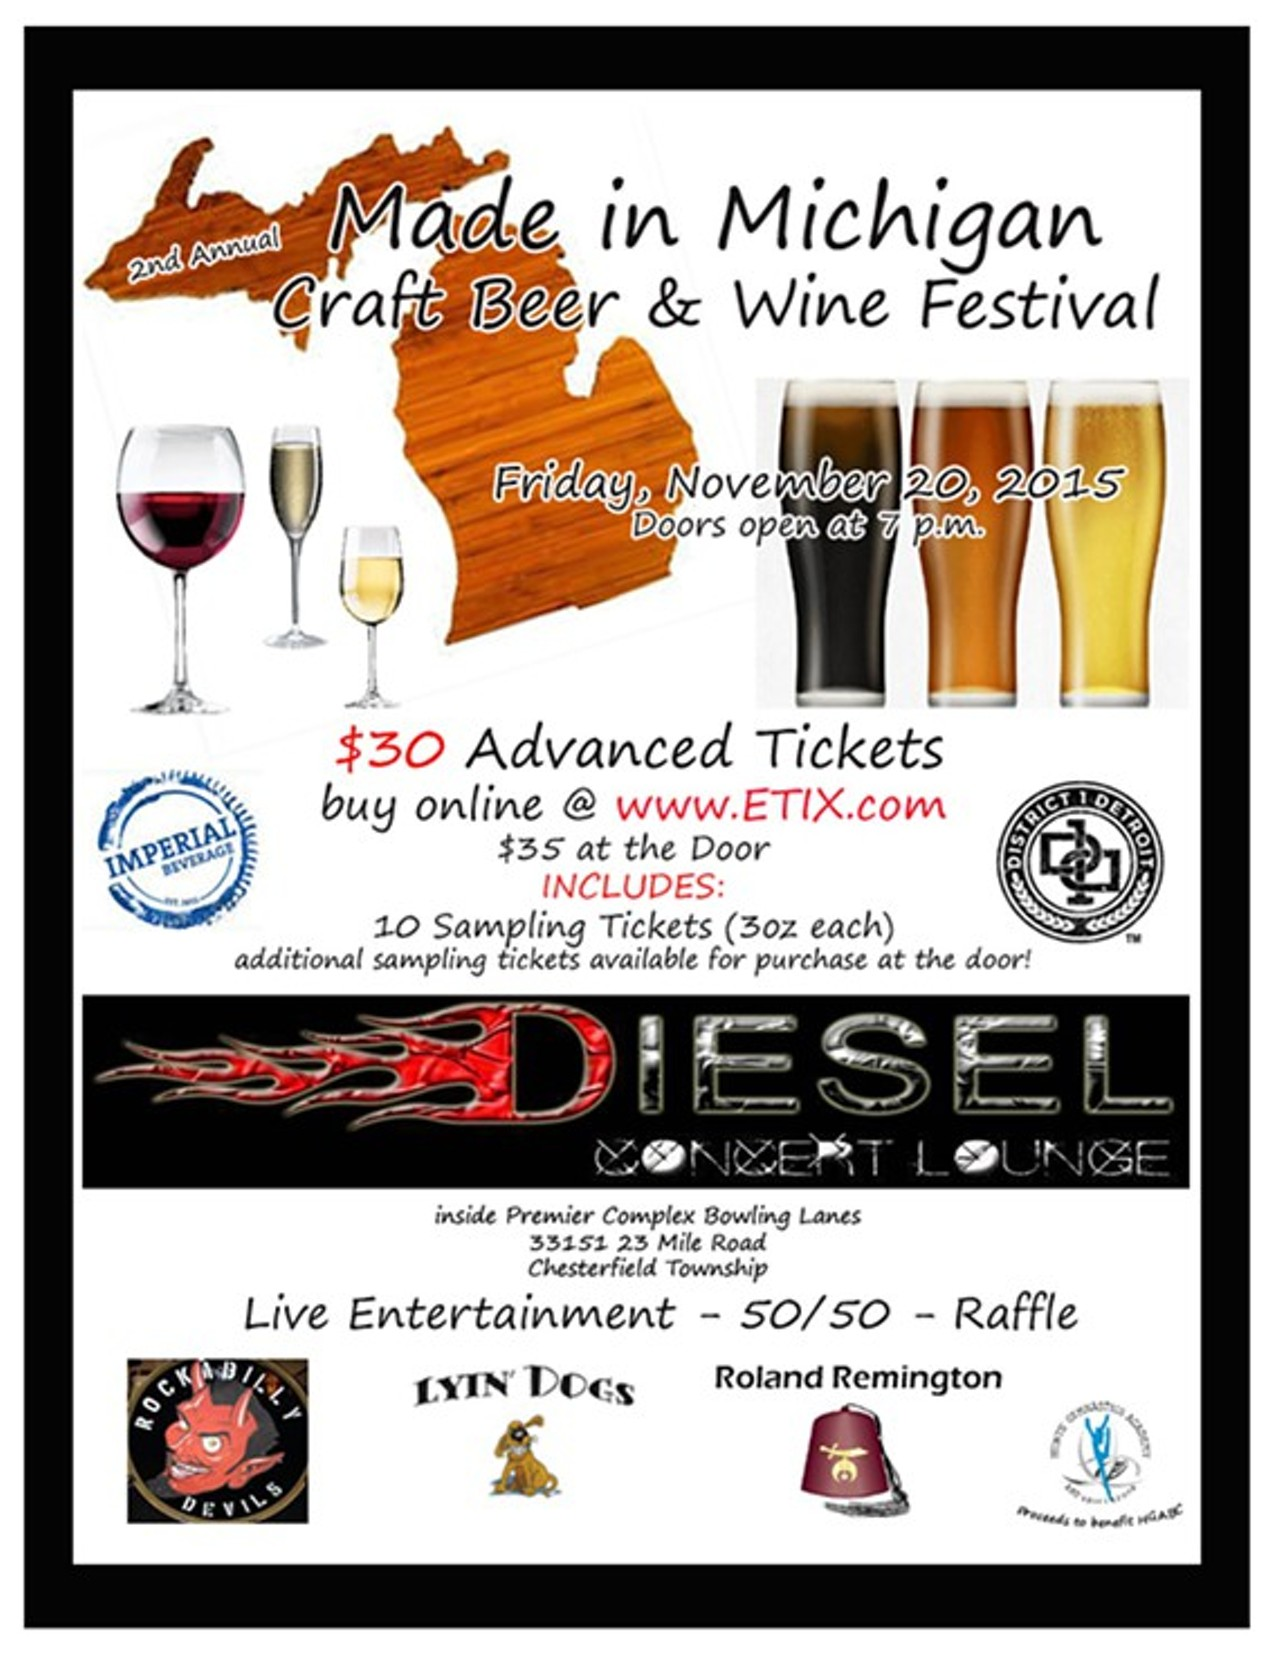 2nd annual made in michigan craft beer wine festival for Michigan craft beer festival